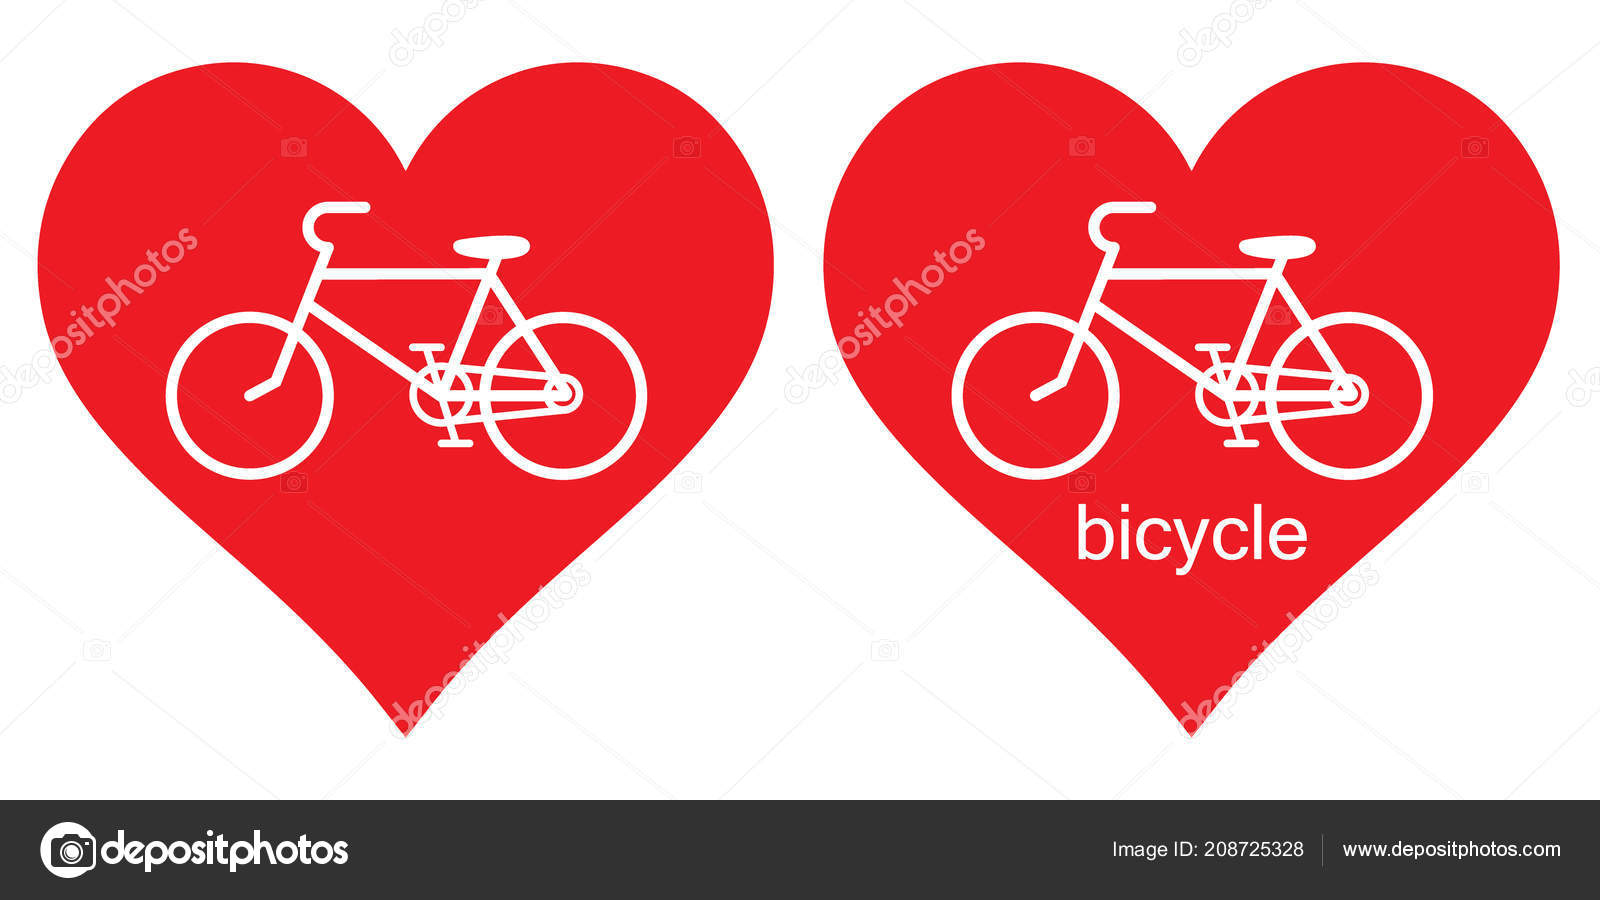 Vector Image Heart Bicycle Love Bike Love Bike Can Used — Stock